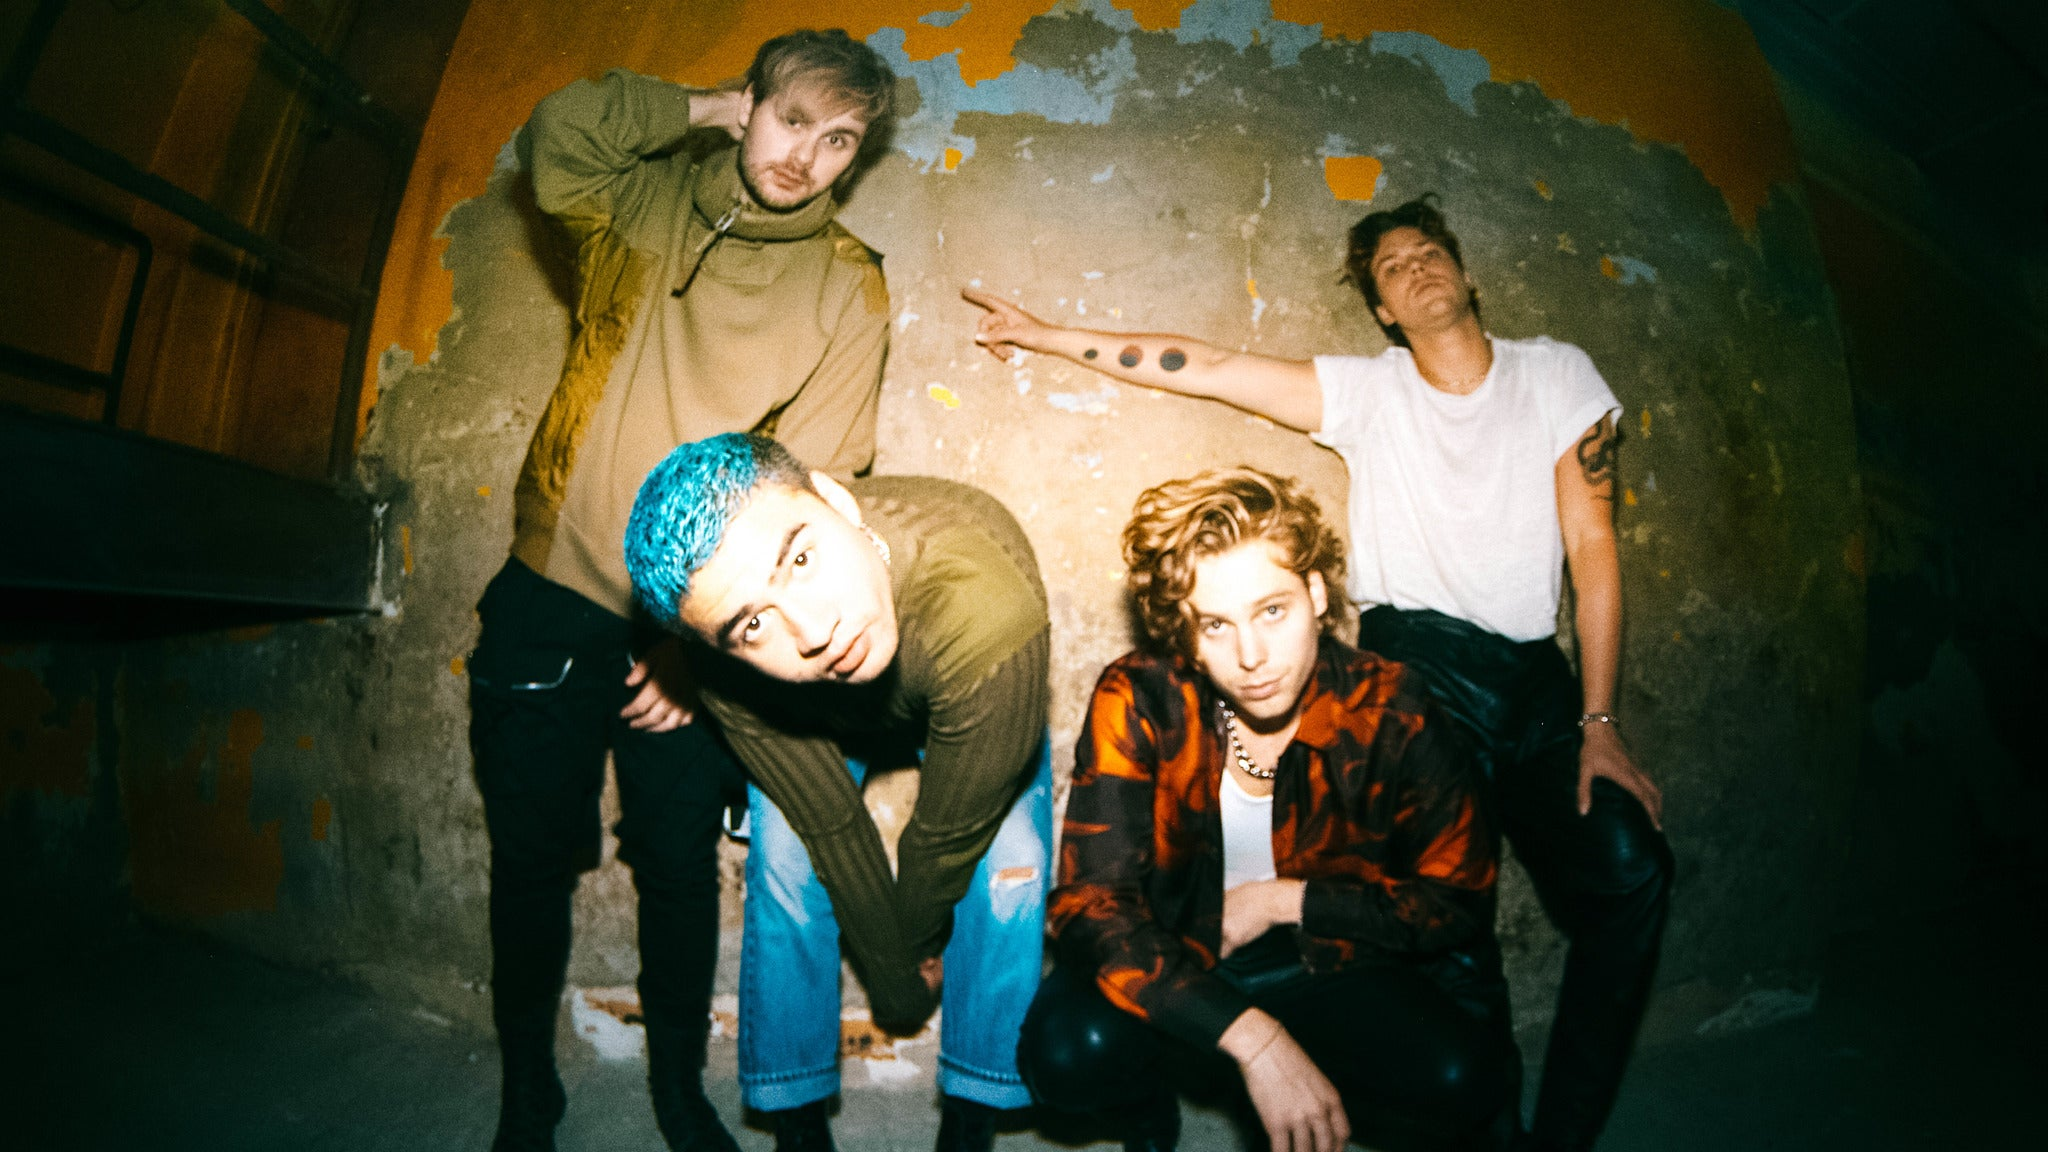 5 Seconds Of Summer - Soundcheck Seated Experience